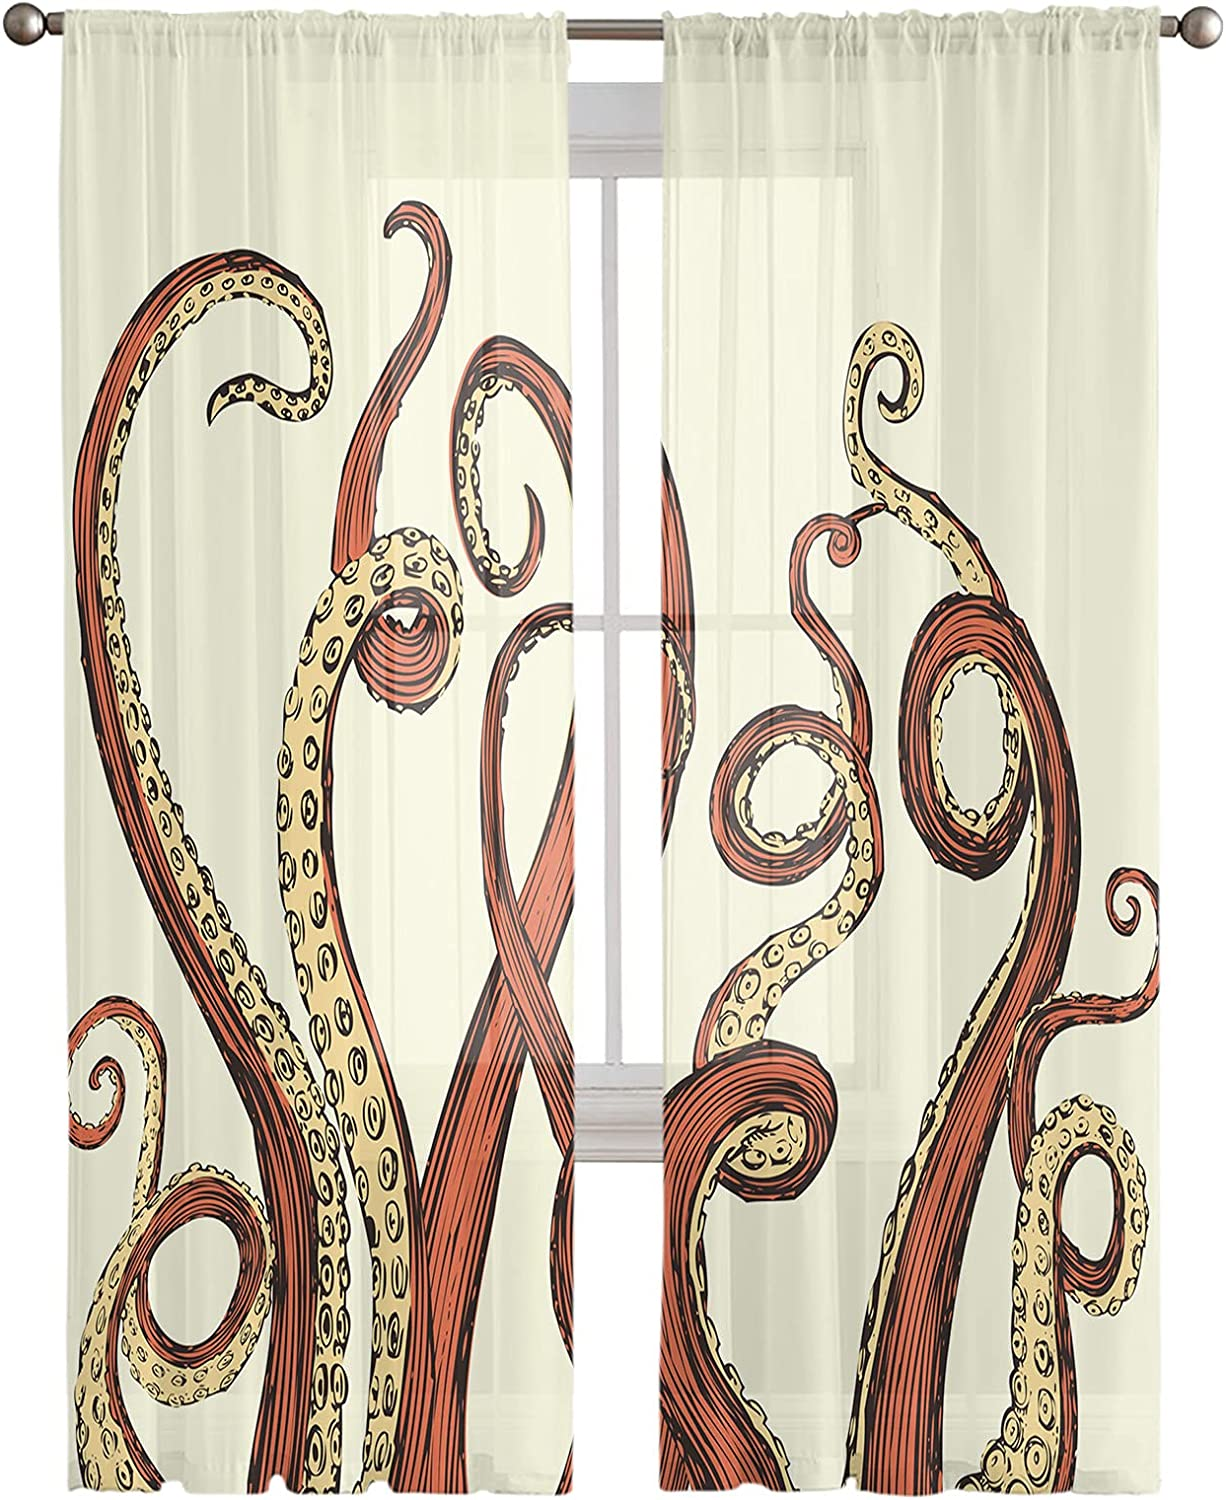 Sheer Max 74% OFF Curtains Voile Daily bargain sale Drapes for See Bedroom Room Living Throug